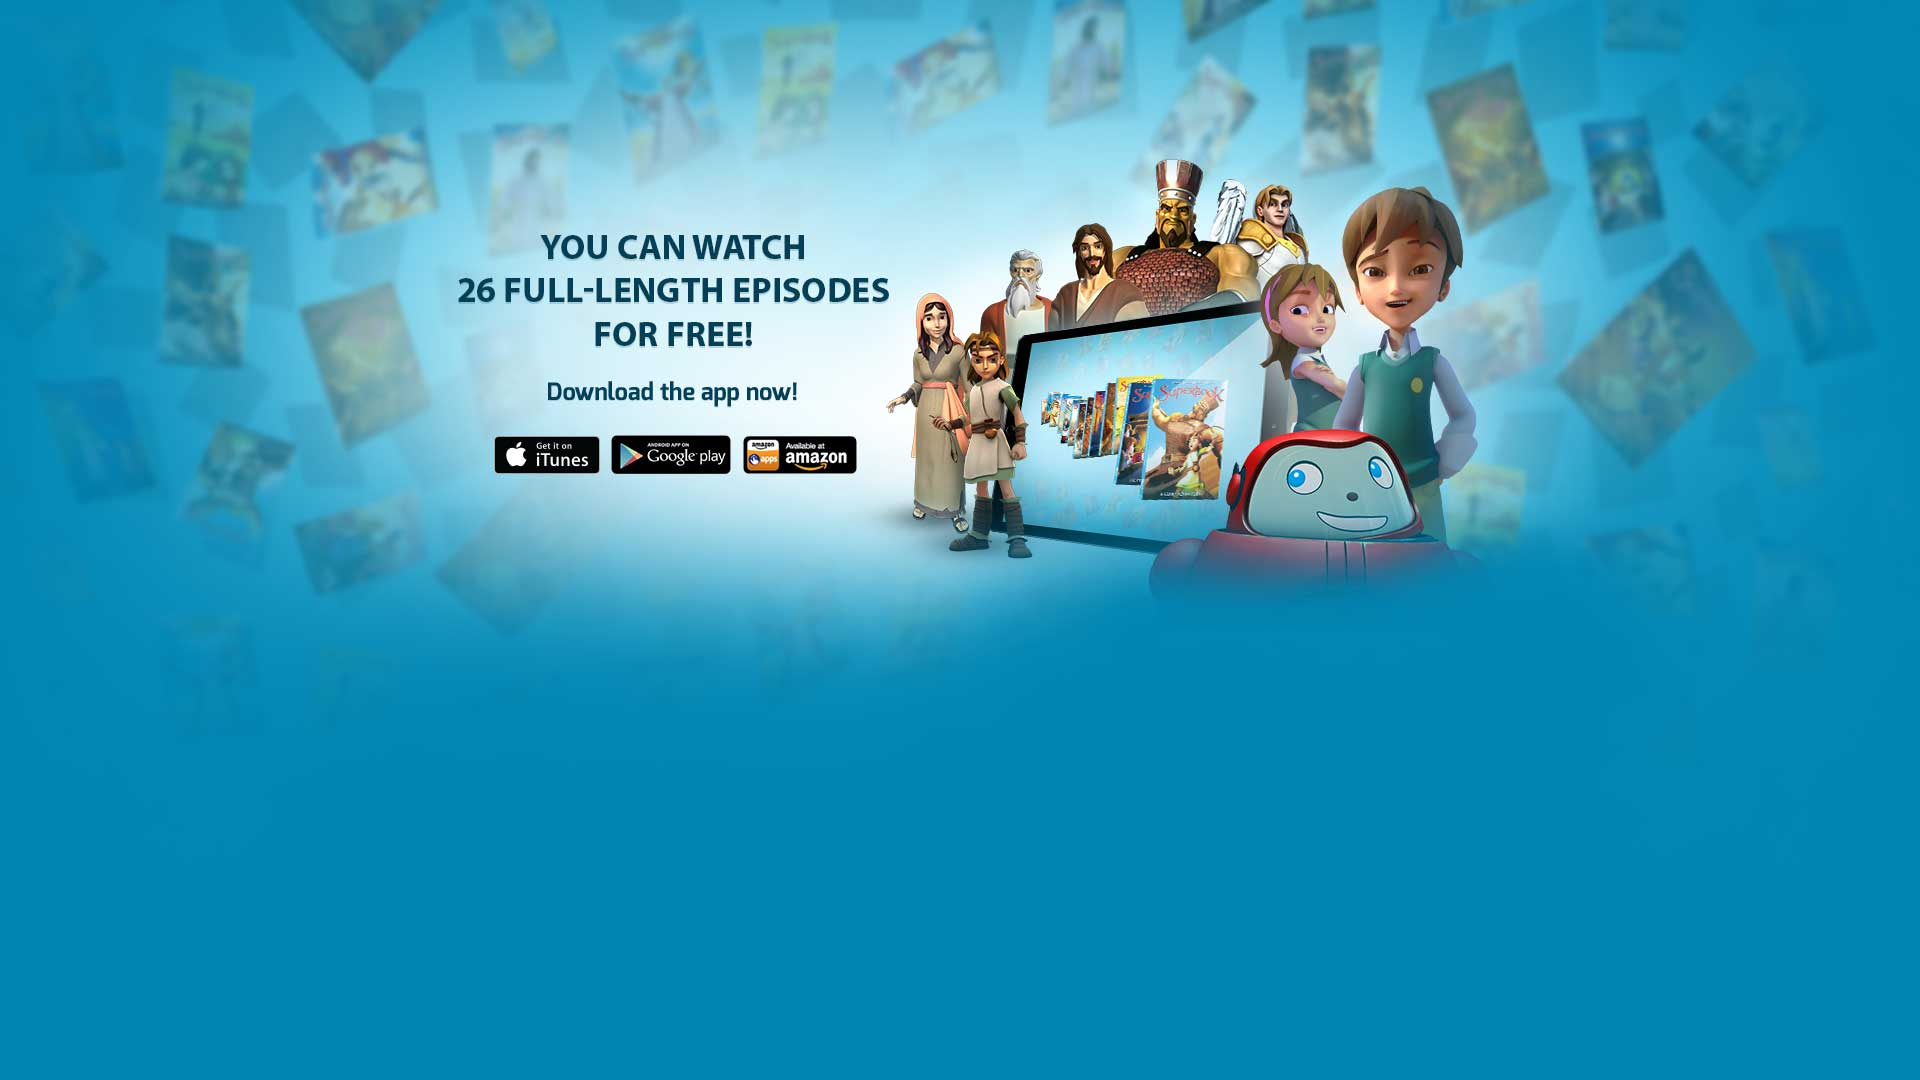 Superbook Kids Website - Free Online Games - Bible-Based Internet